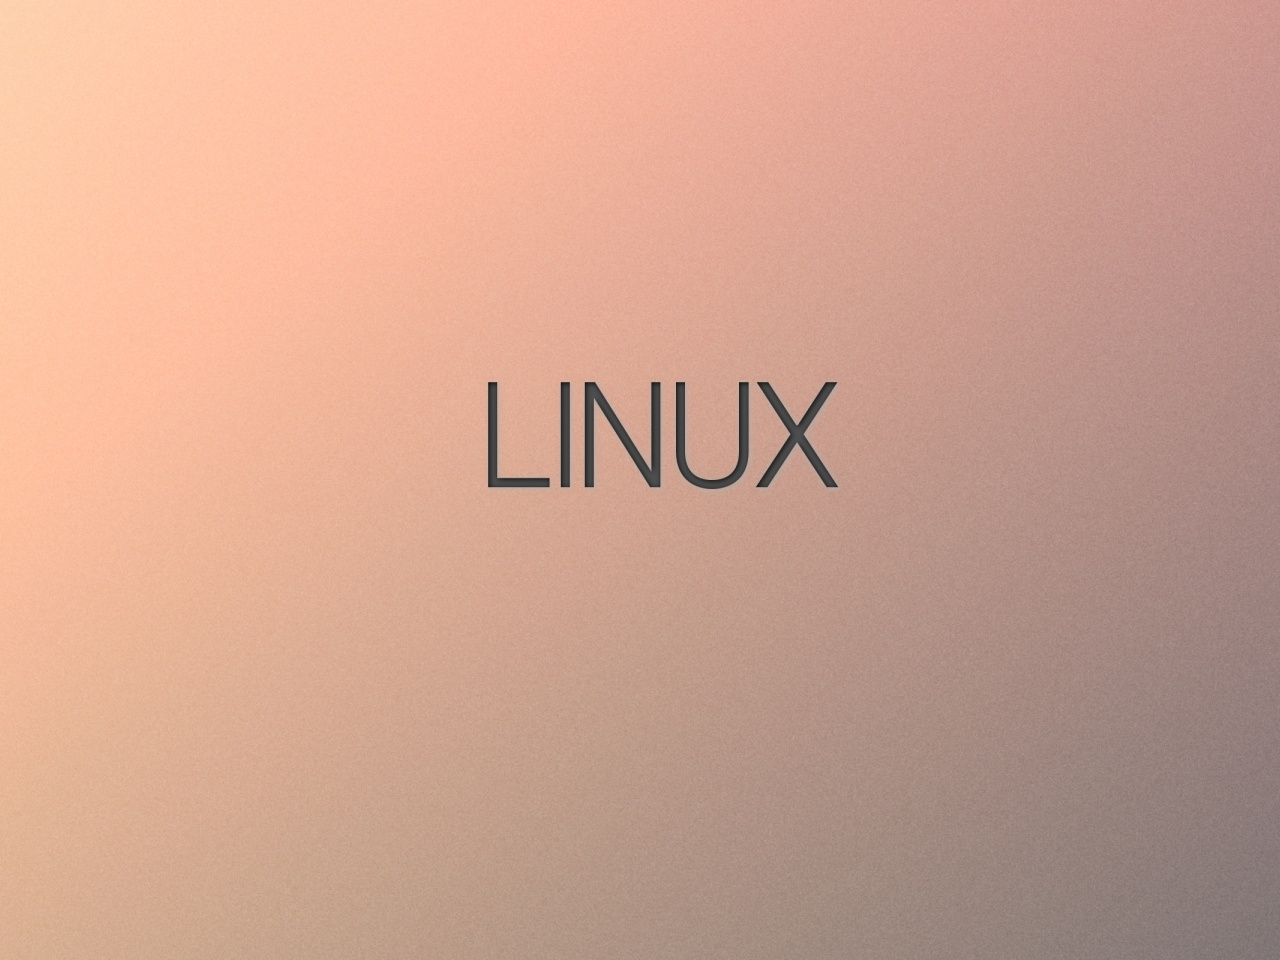 1280x720 linux typography vimeo cover image